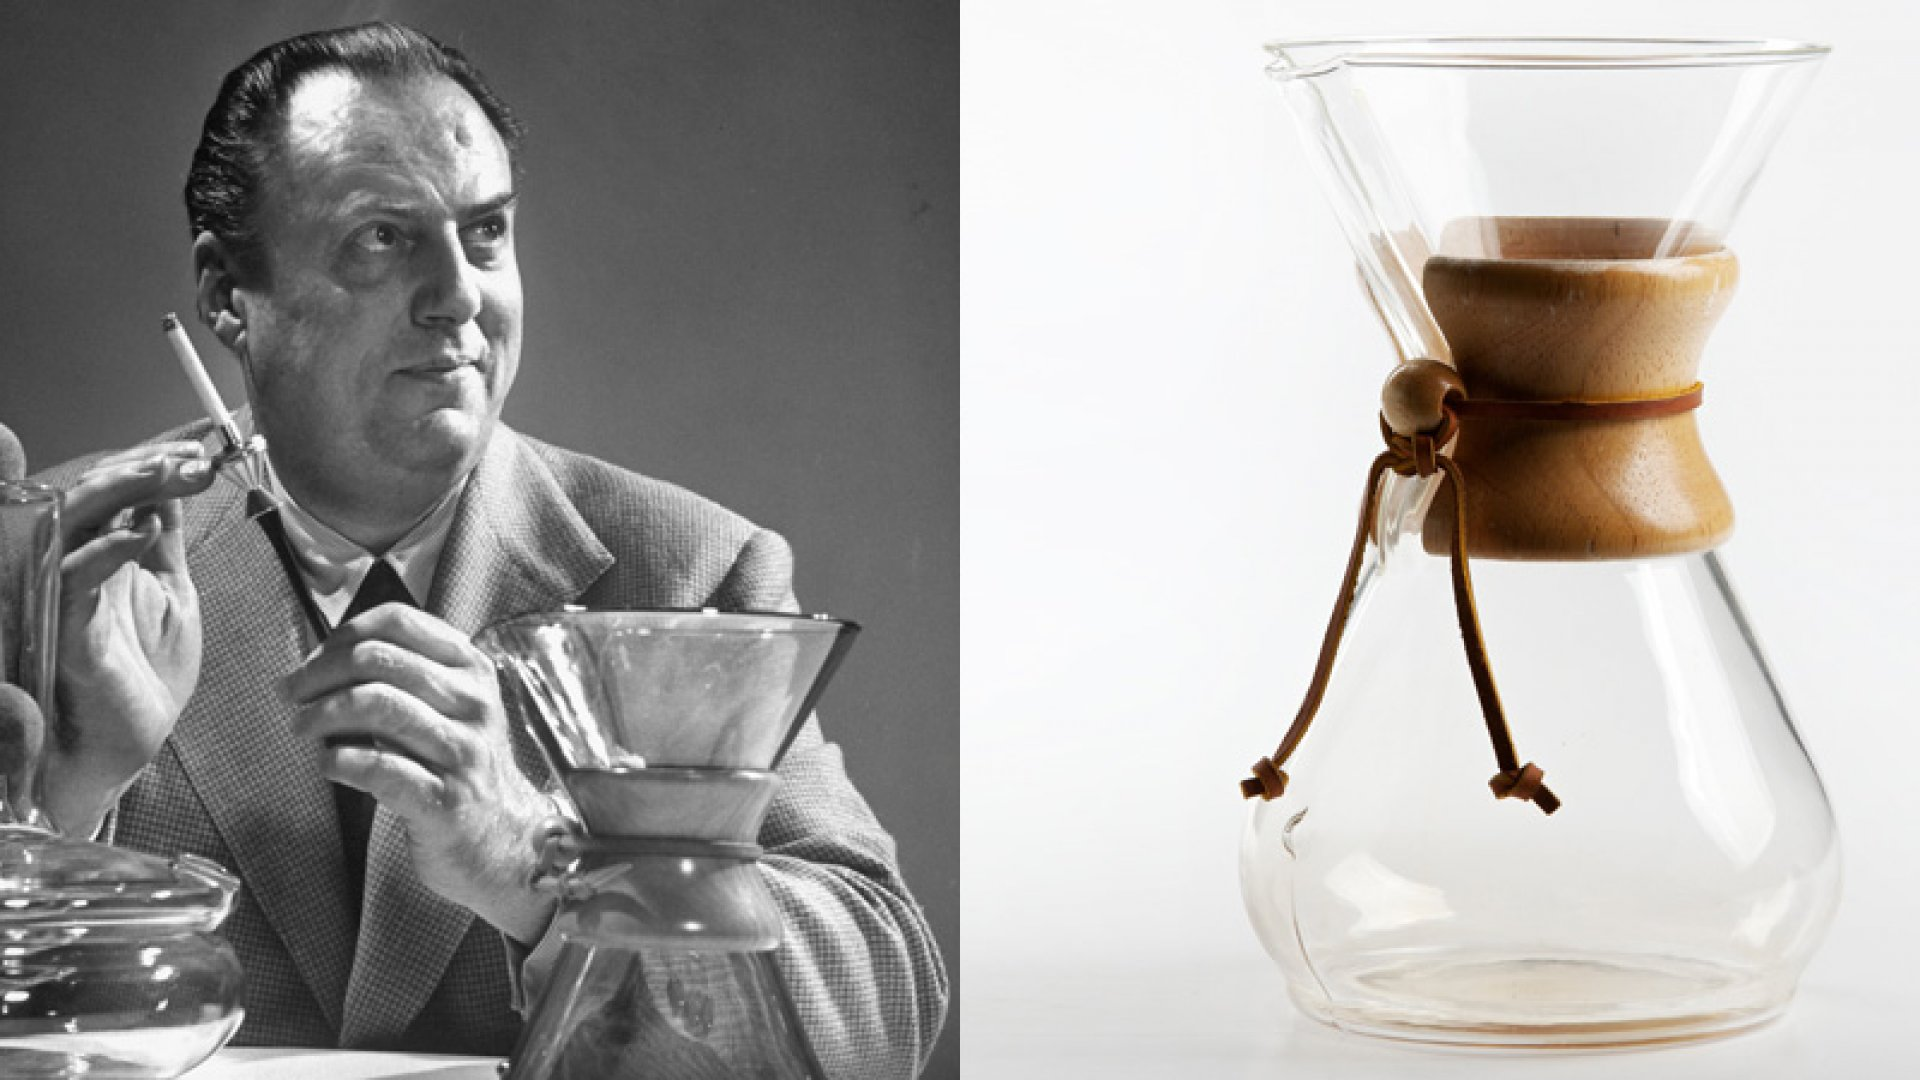 Inside the Genius Design of the Chemex Coffeemaker